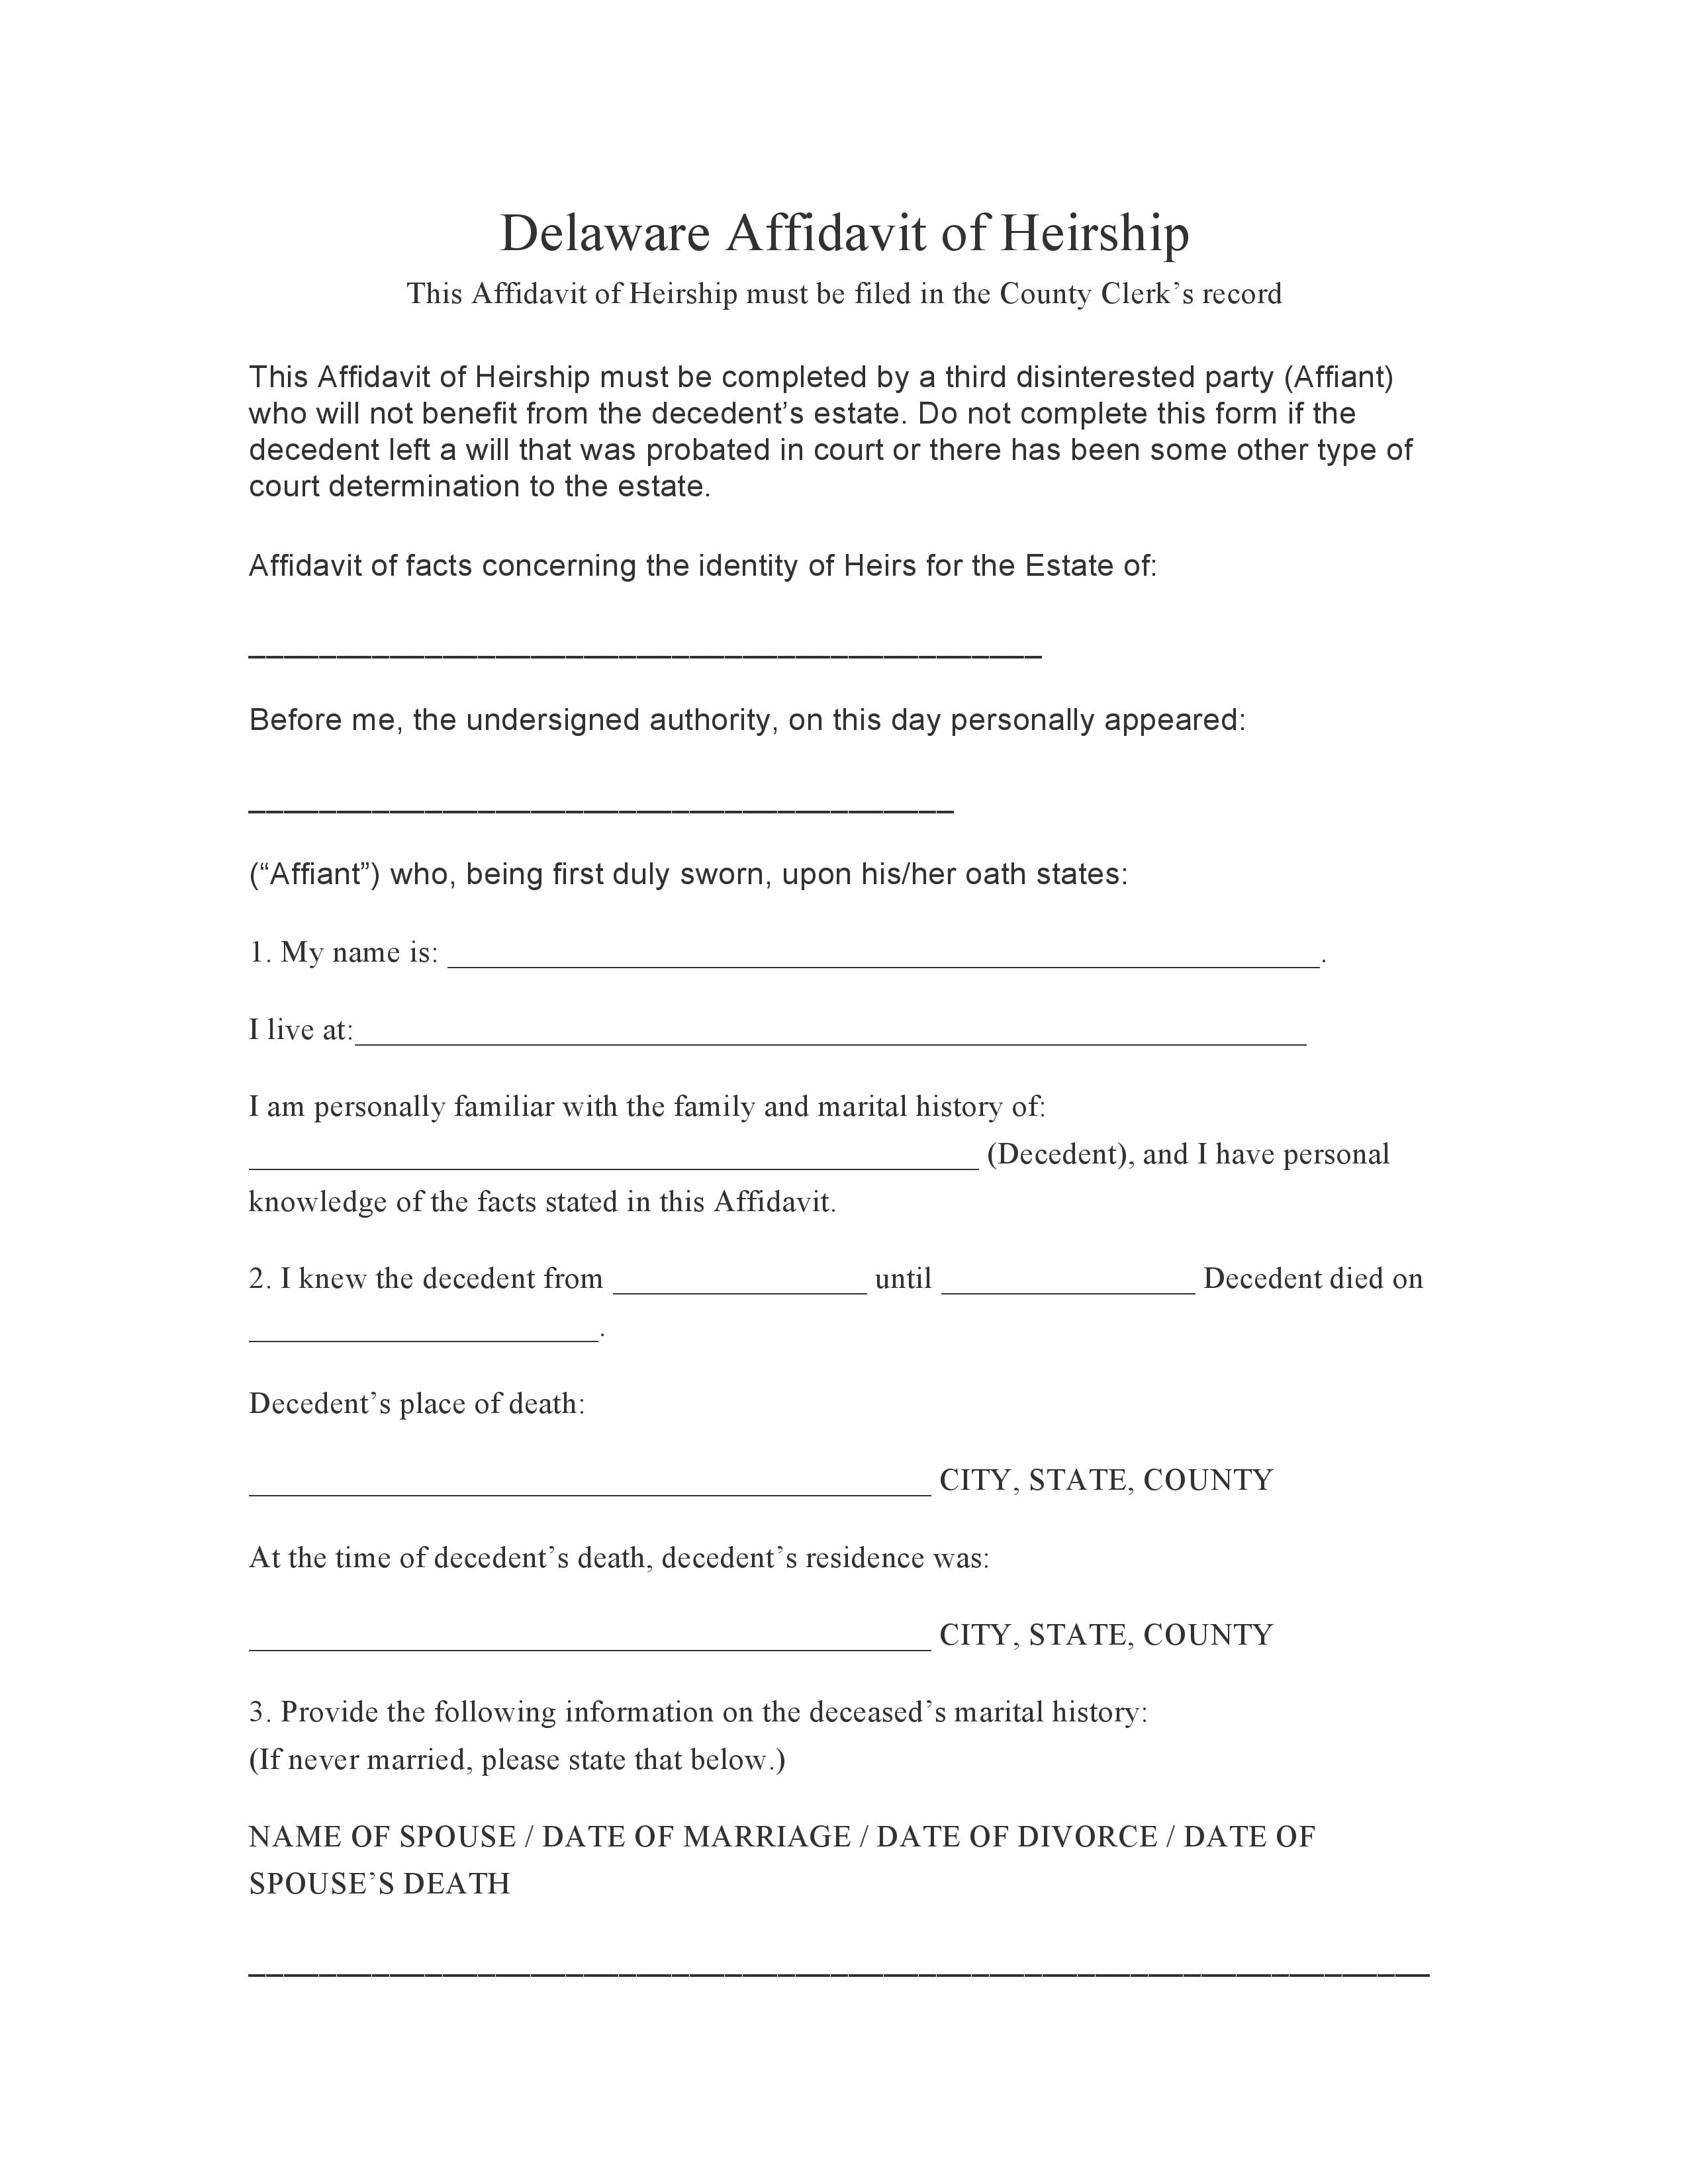 Delaware Affidavit Of Heirship Form